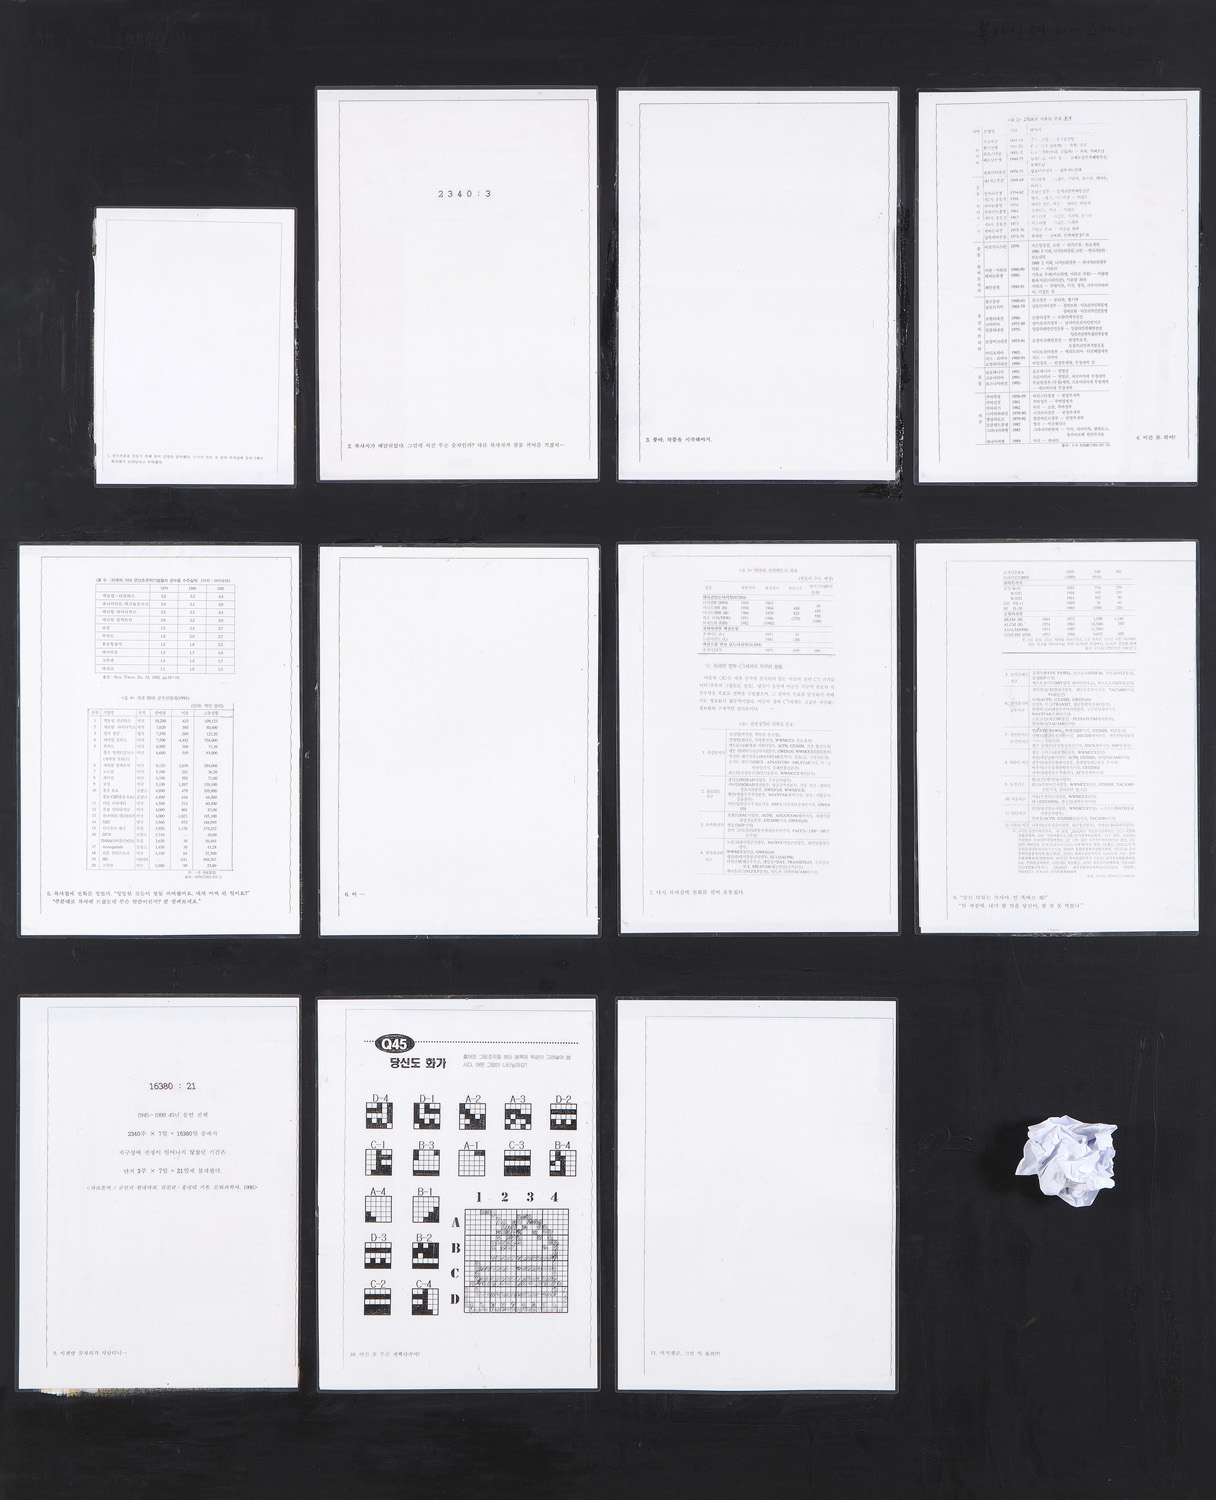 Failure to Make Copies, 2000, An enlarged copy of prints, 162x130cm